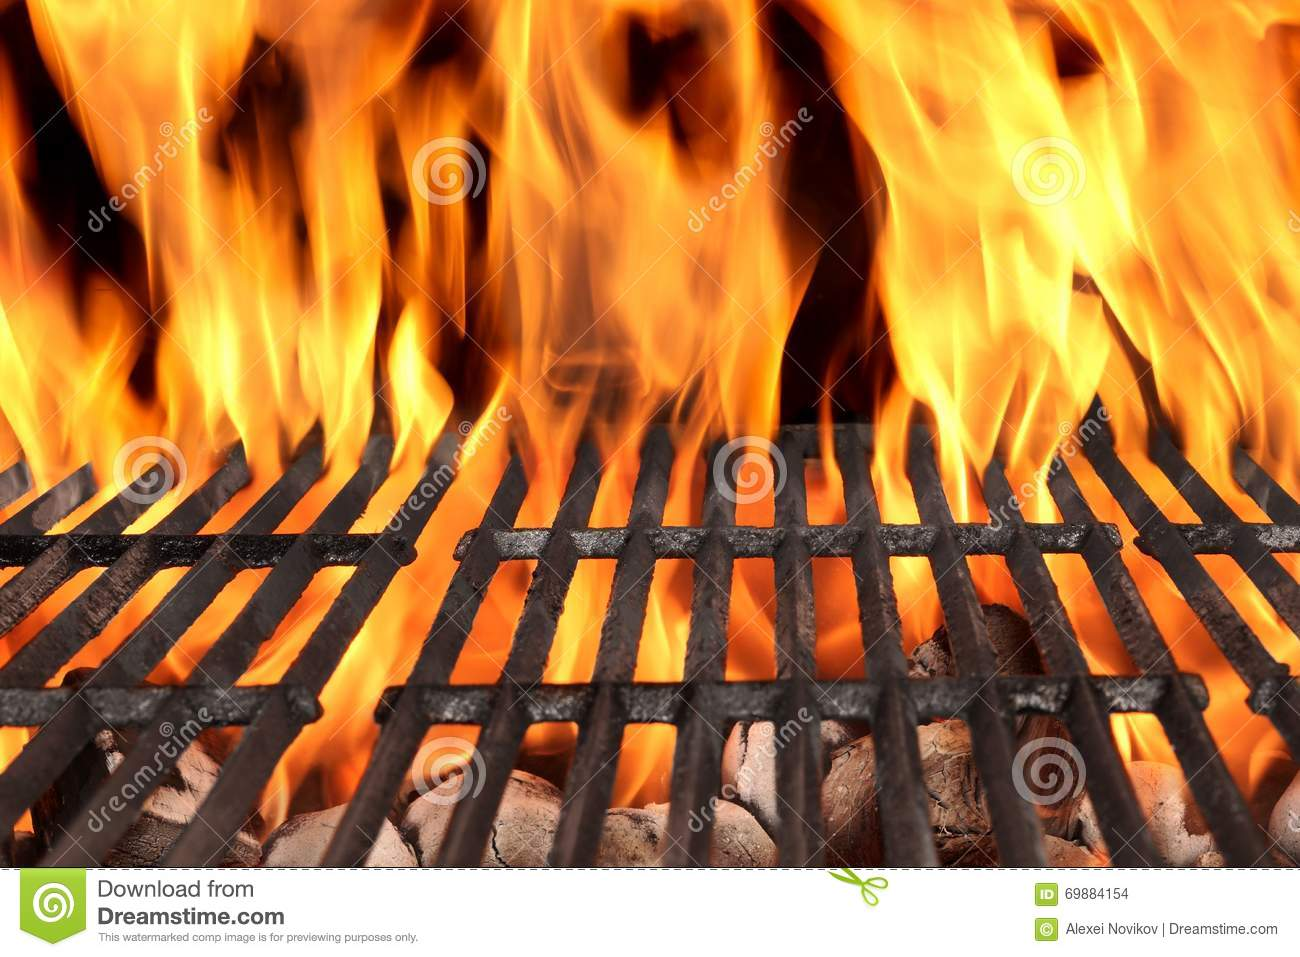 Hot Empty Charcoal BBQ Royalty-Free Stock Image